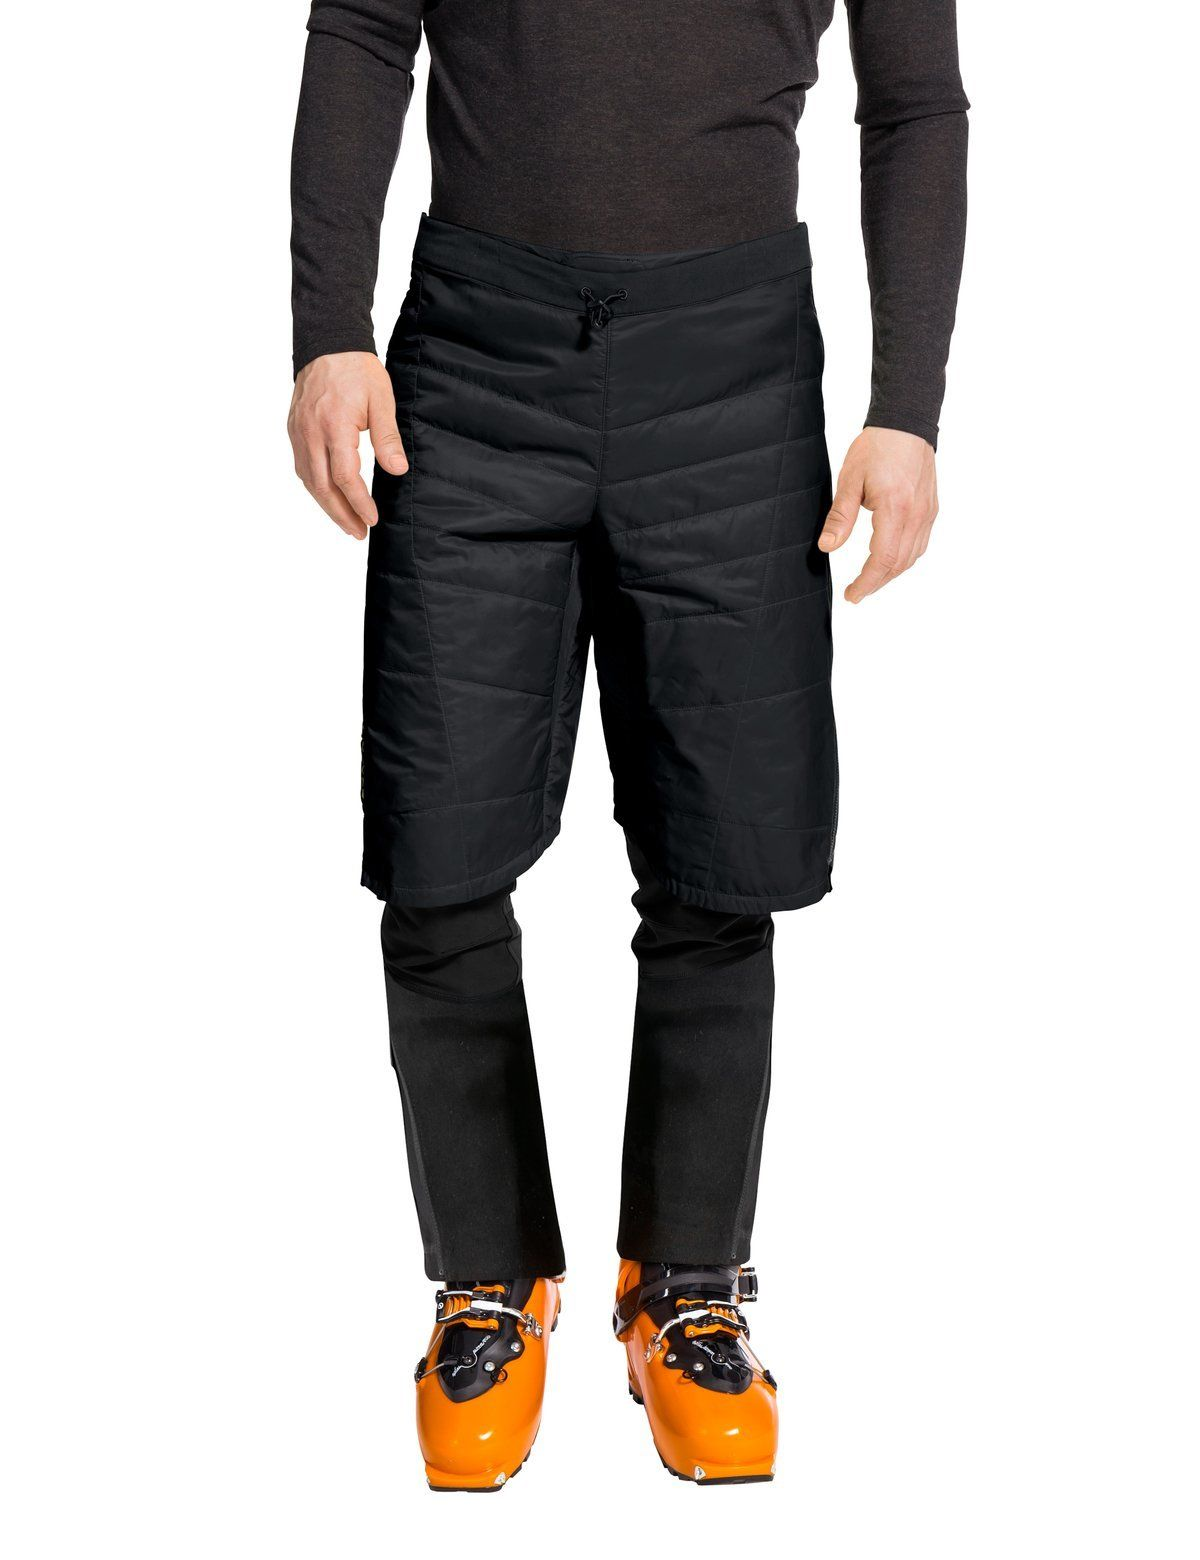 Vaude - Men's Sesvenna Shorts II - Black - Polyamide - Weekendbee - sustainable sportswear